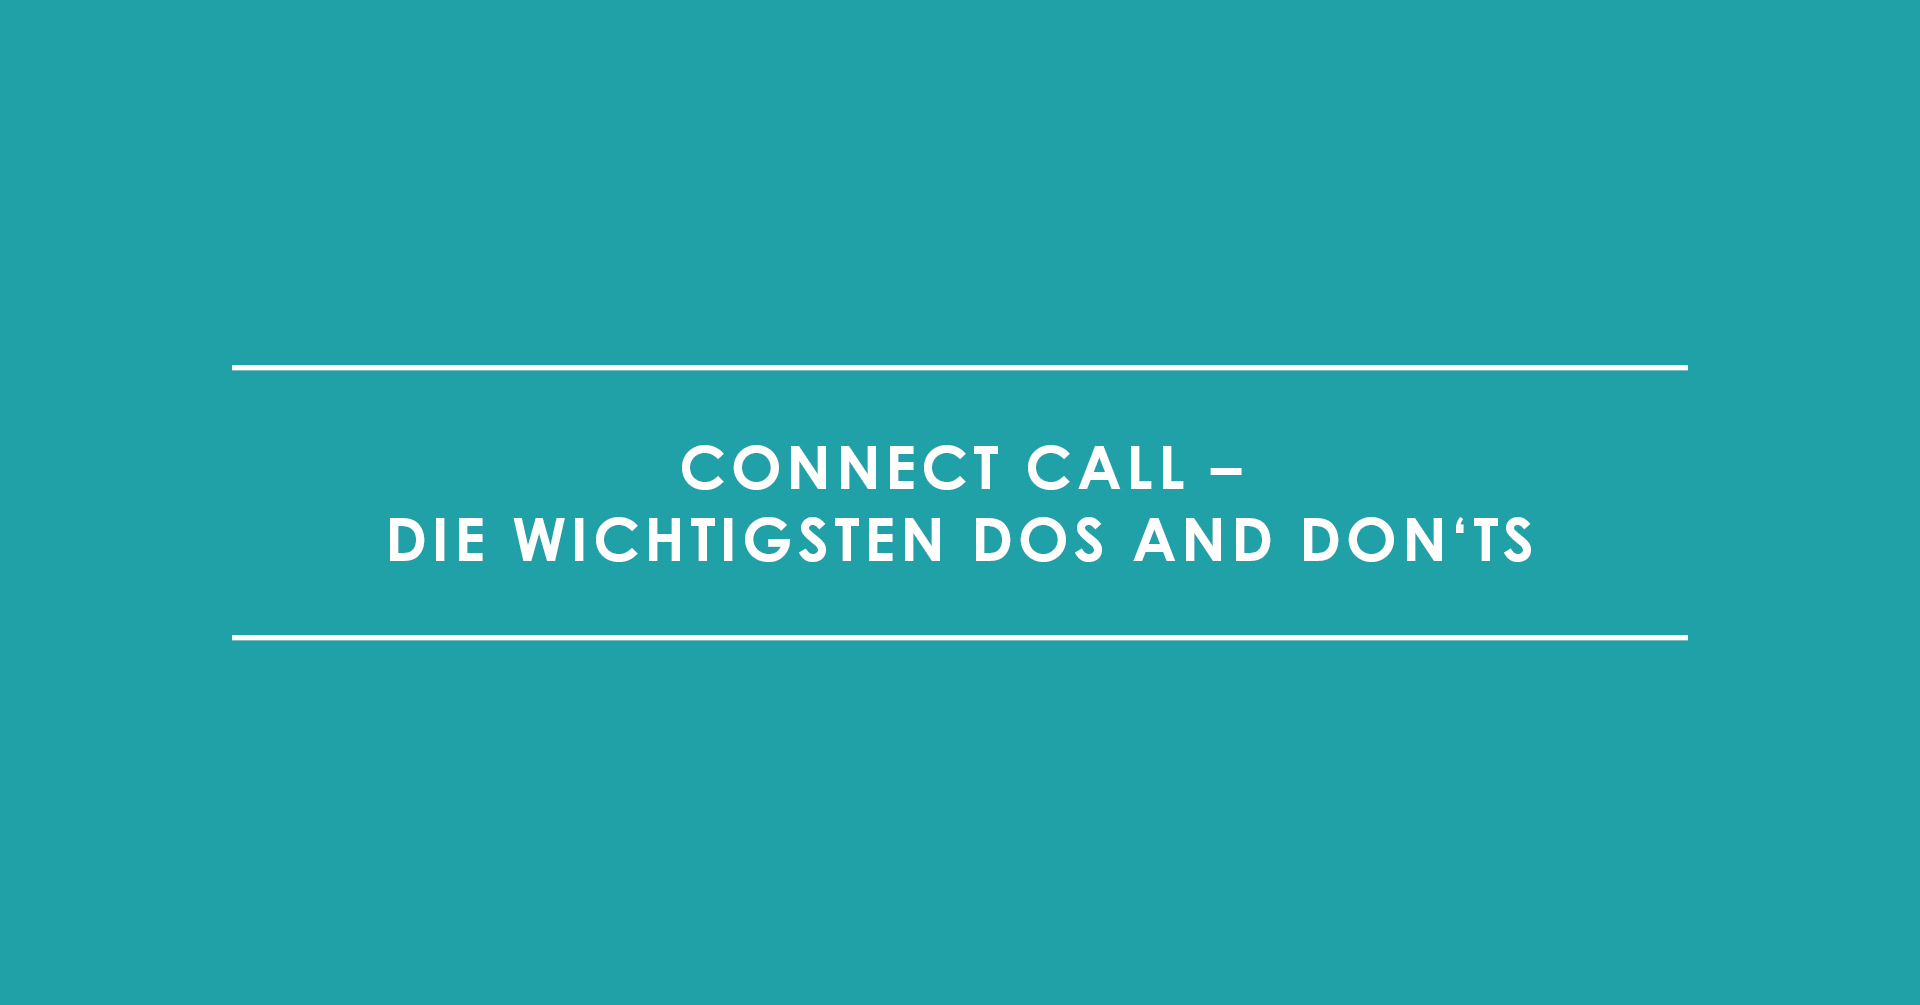 Connect Call – Die wichtigsten Dos and Don'ts